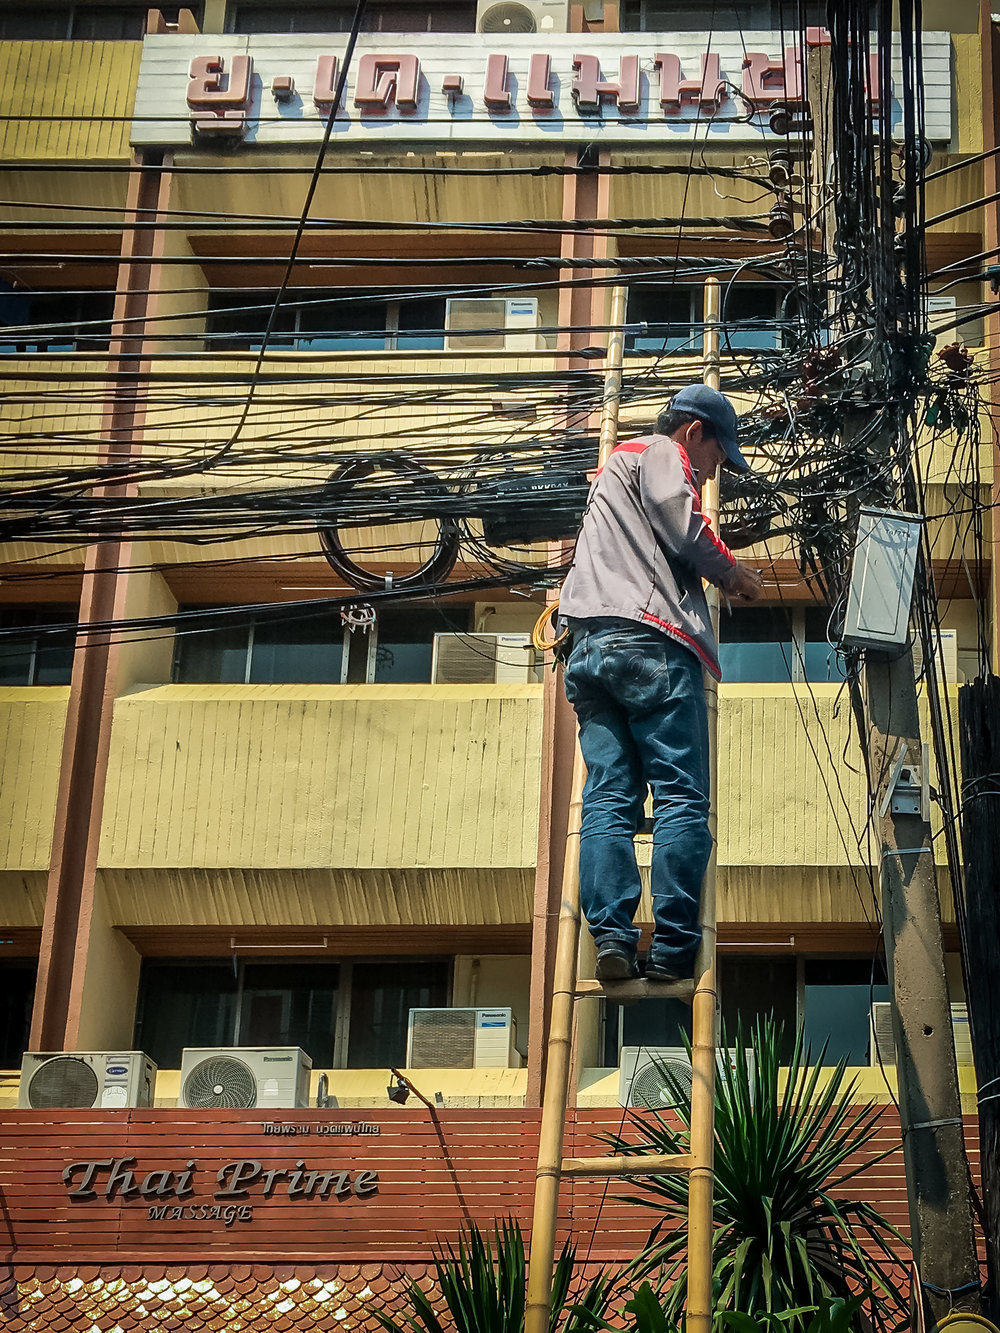 Man on Wires